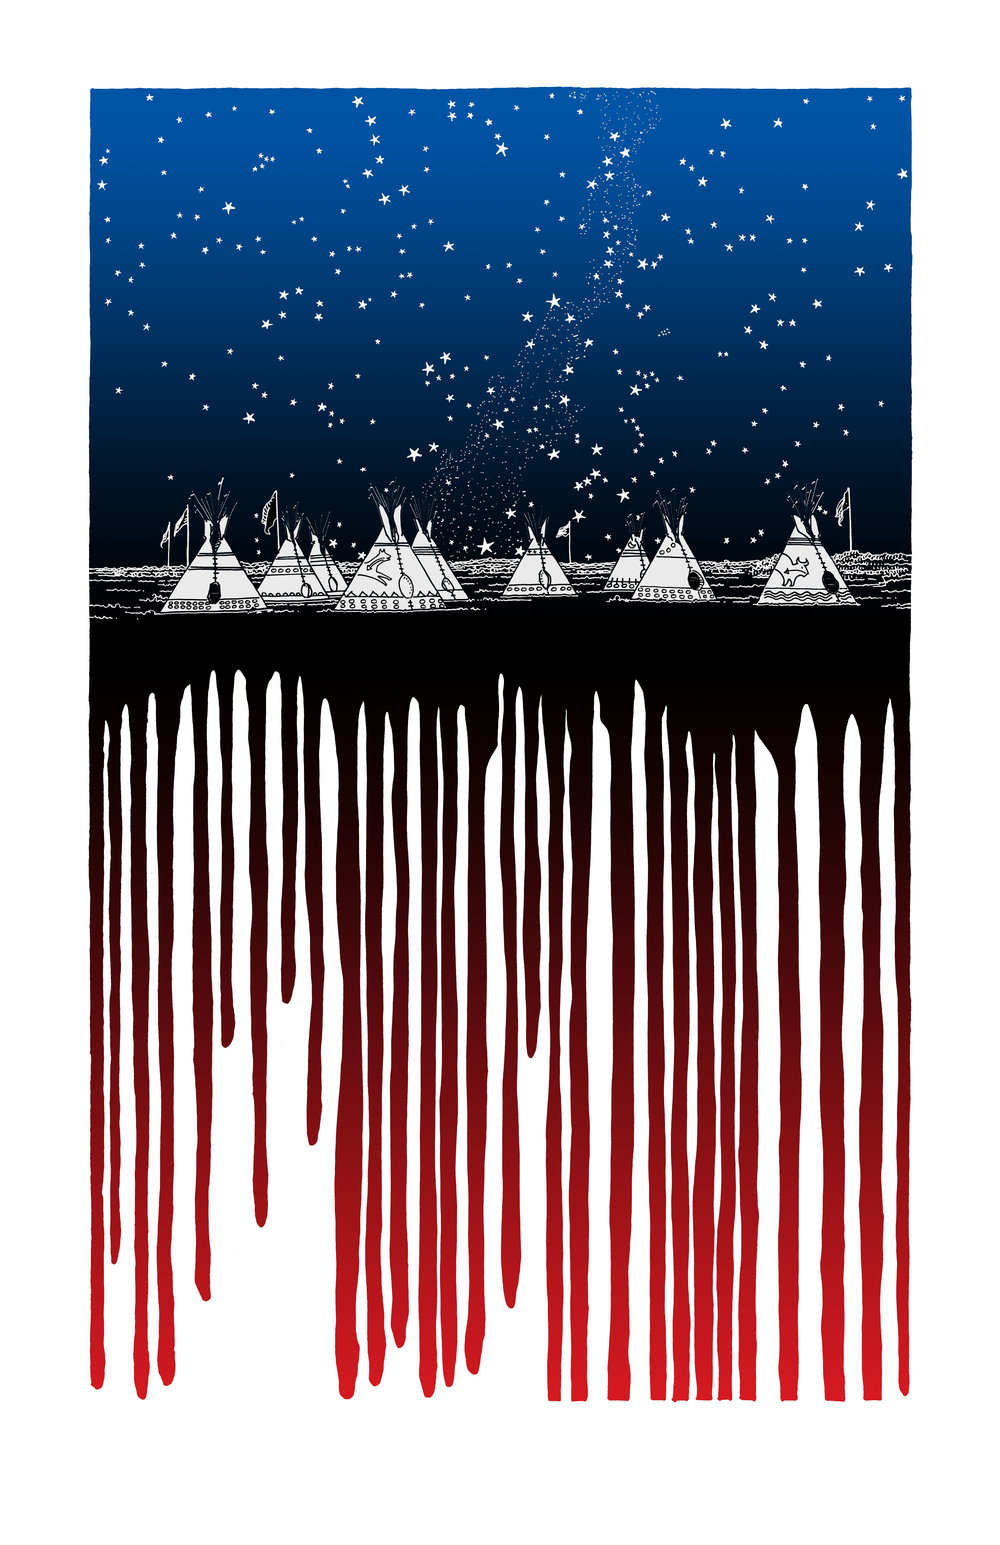 Fernando Marti, American Flag, 2017, split fountain screen print, 11 x 17 inches $35